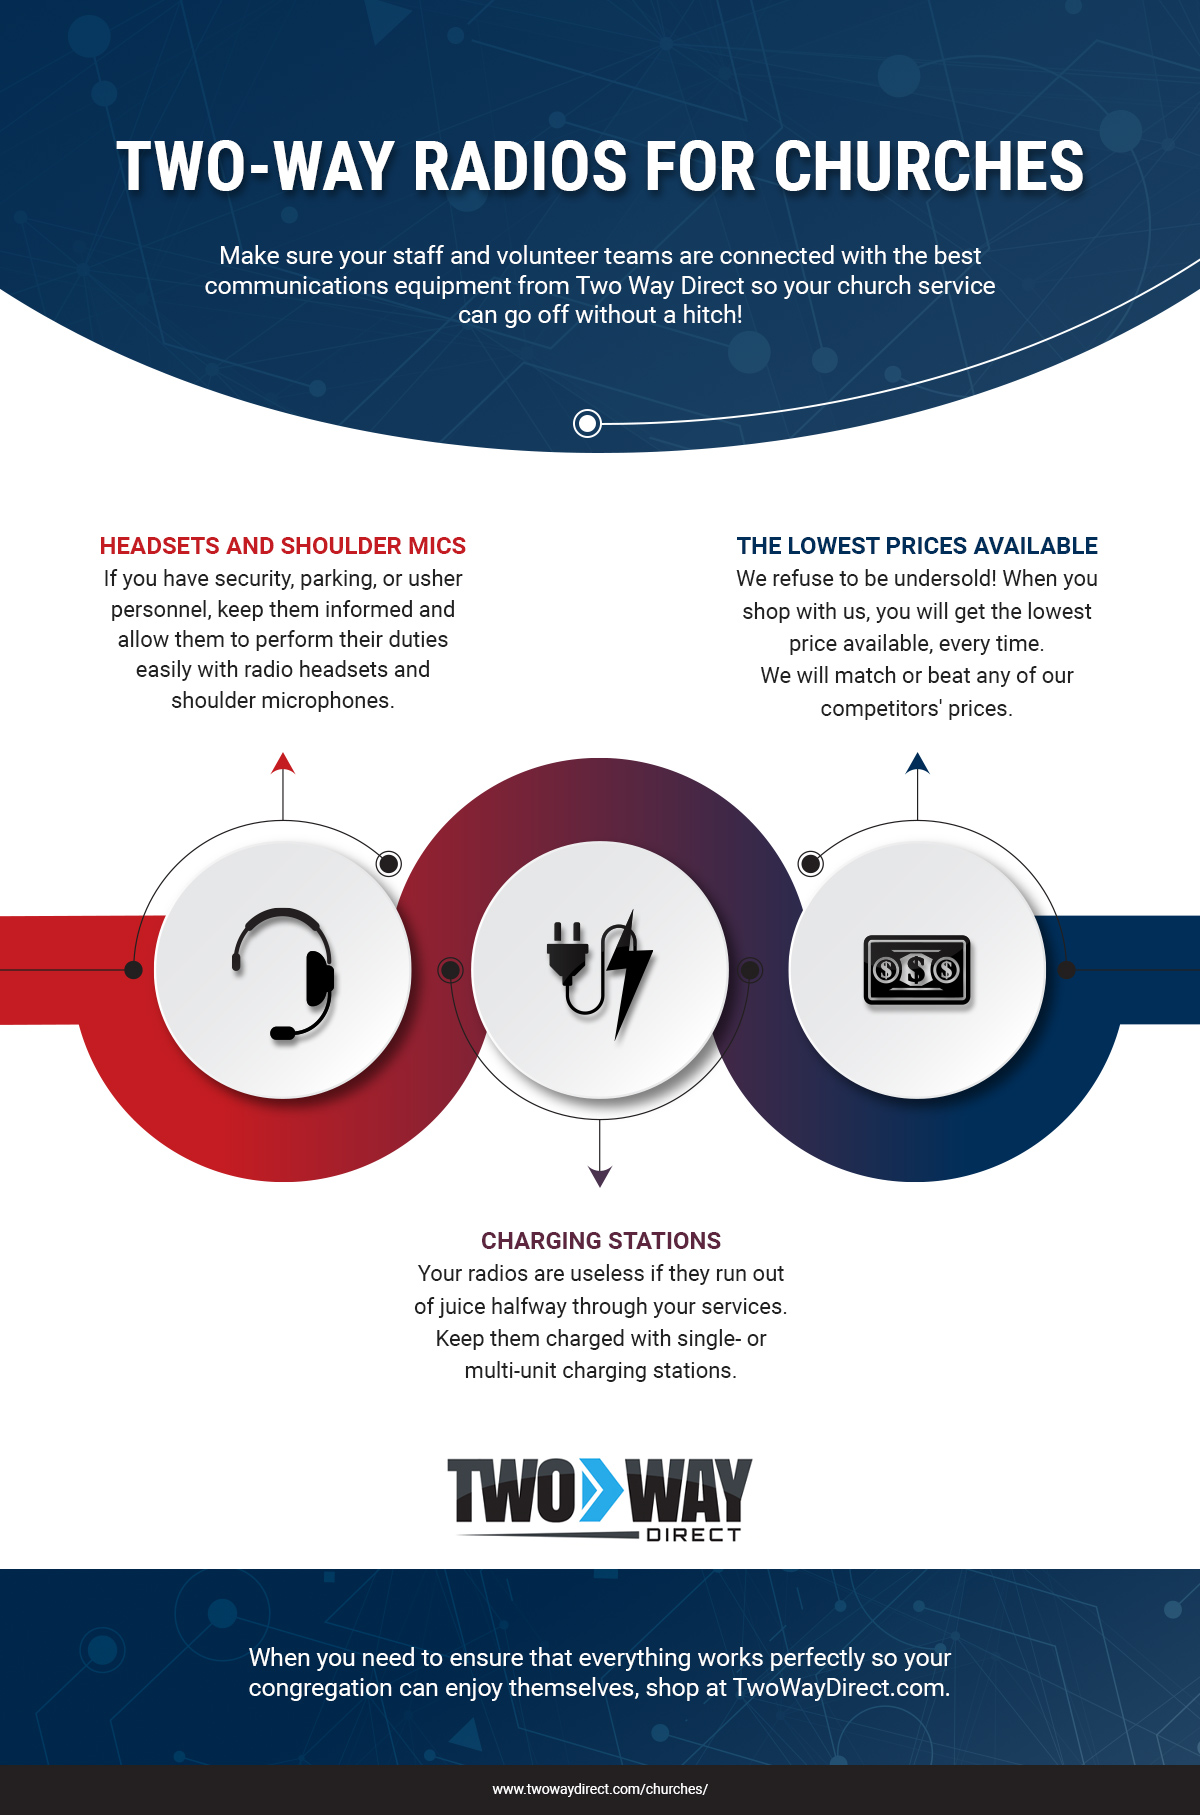 two-way-radios-for-churches-infographic.jpg